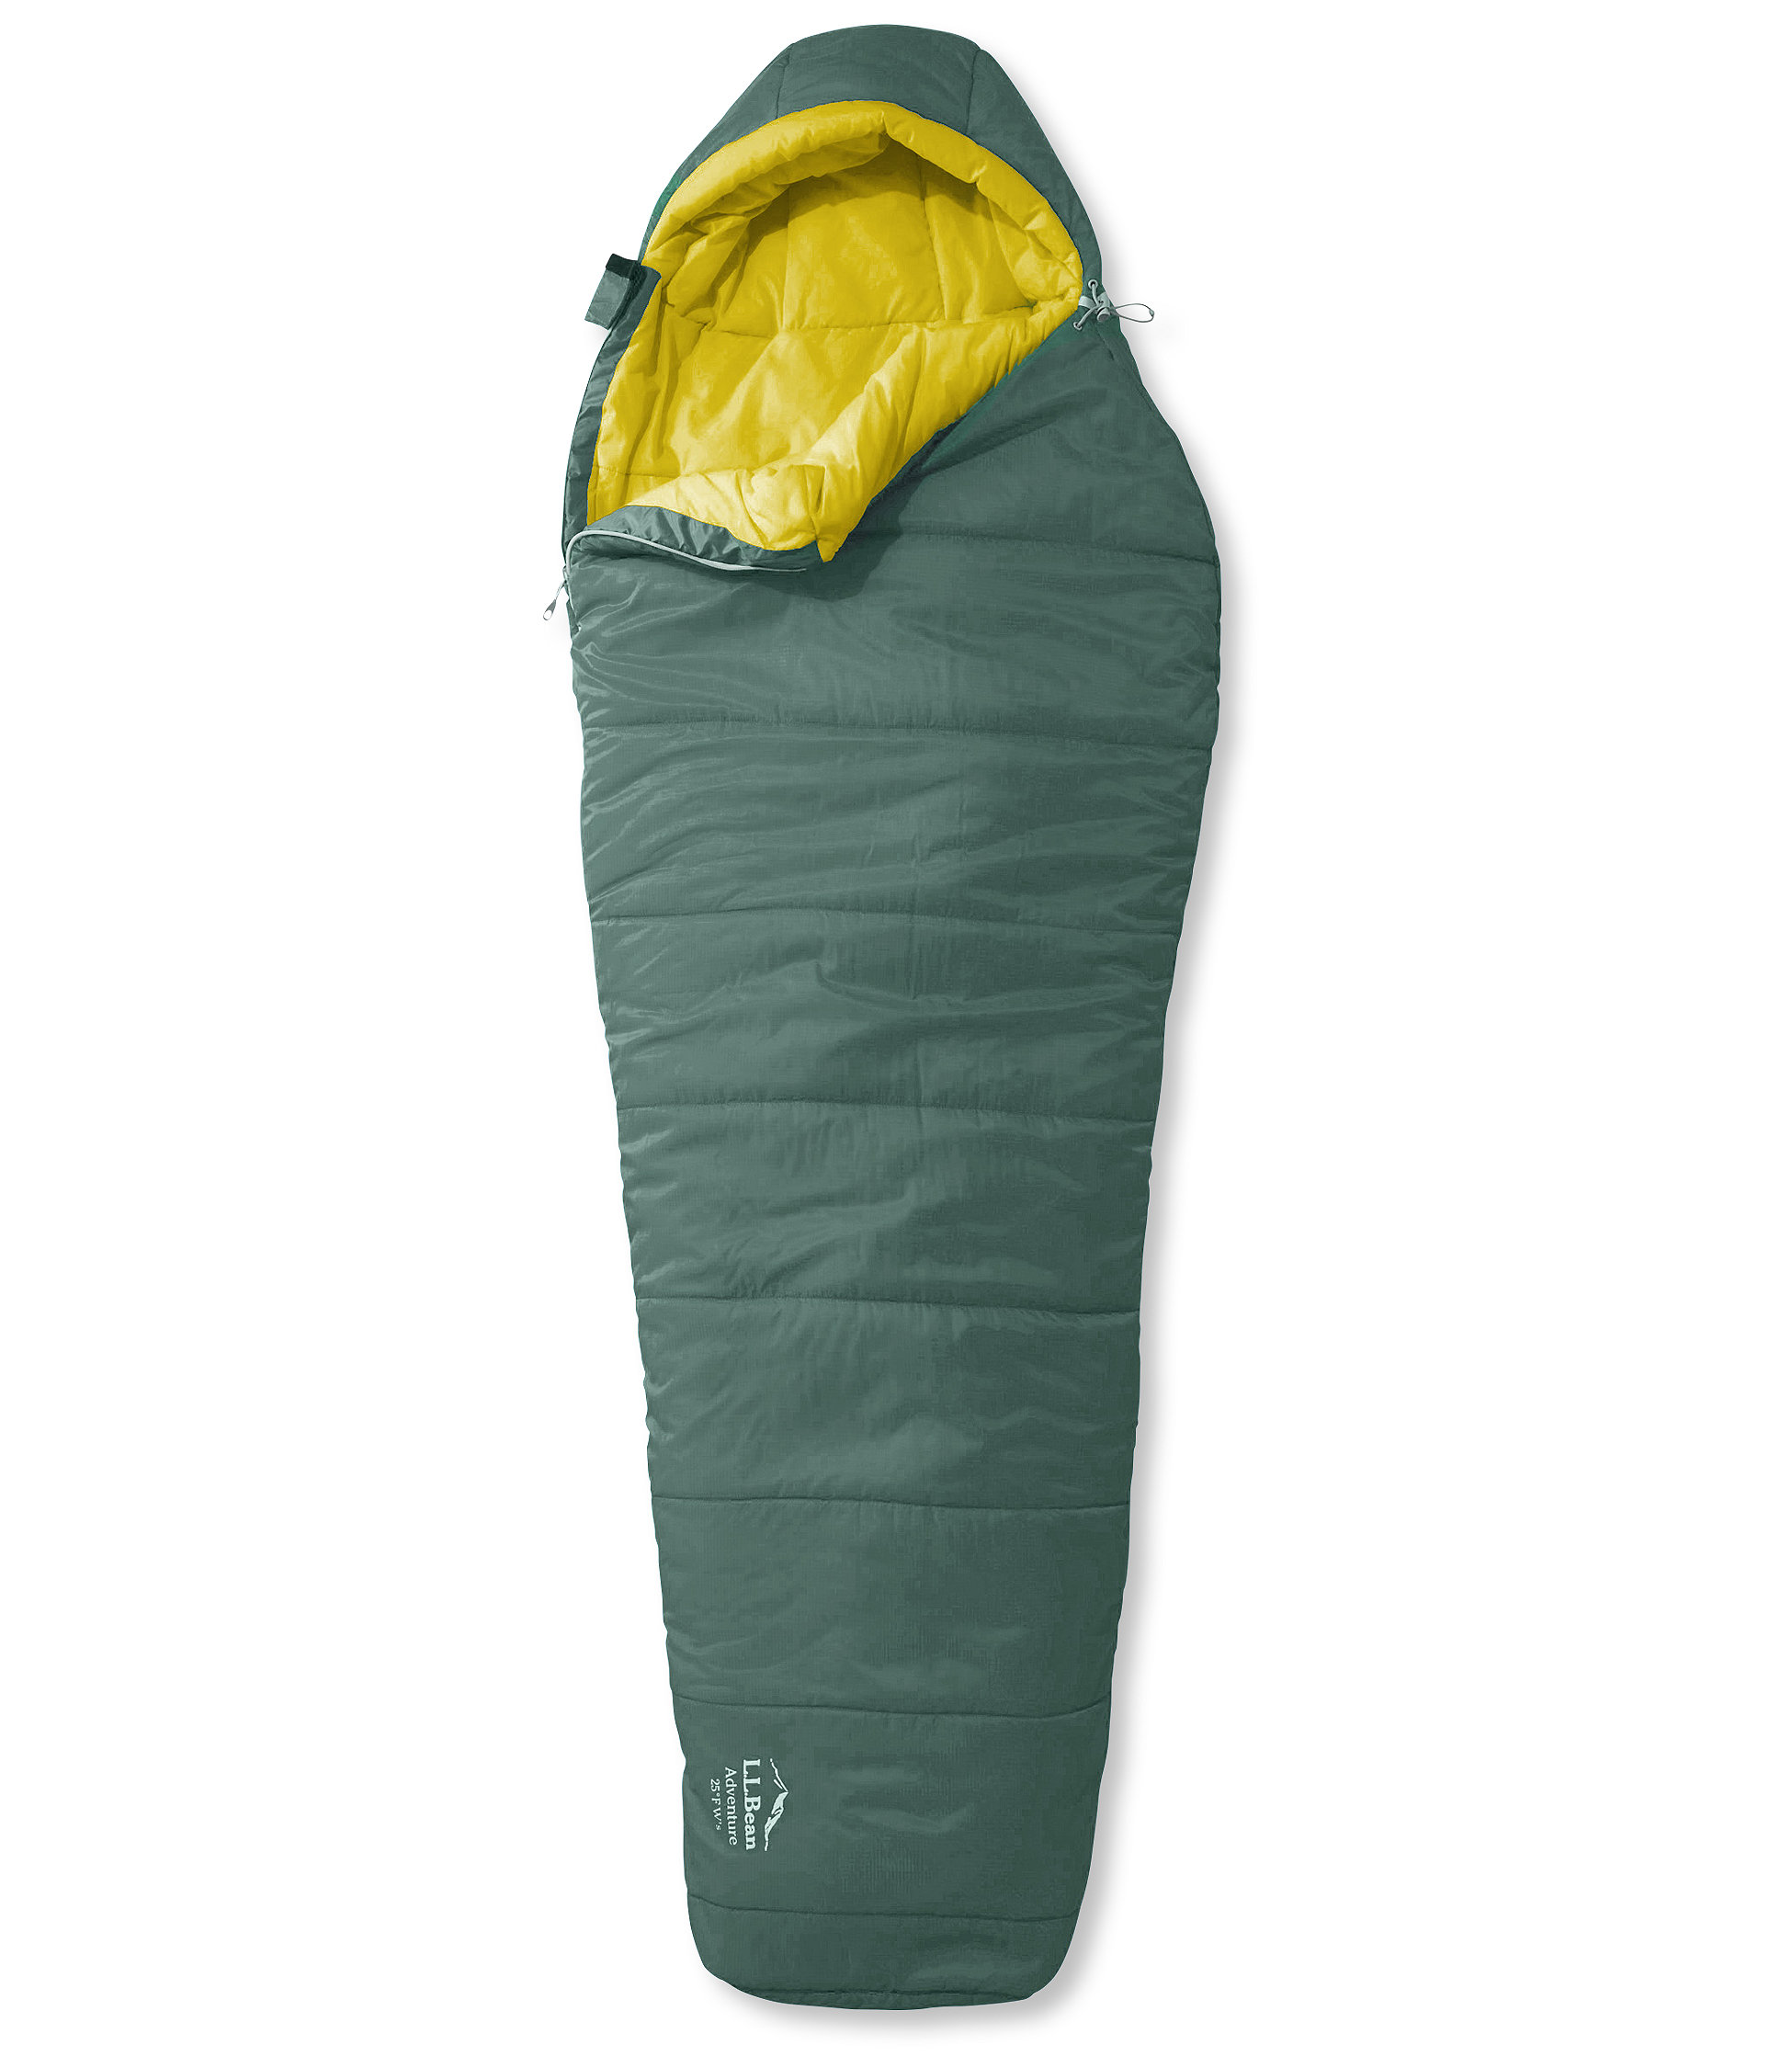 photo: L.L.Bean Adventure Sleeping Bag, Mummy 25 3-season synthetic sleeping bag